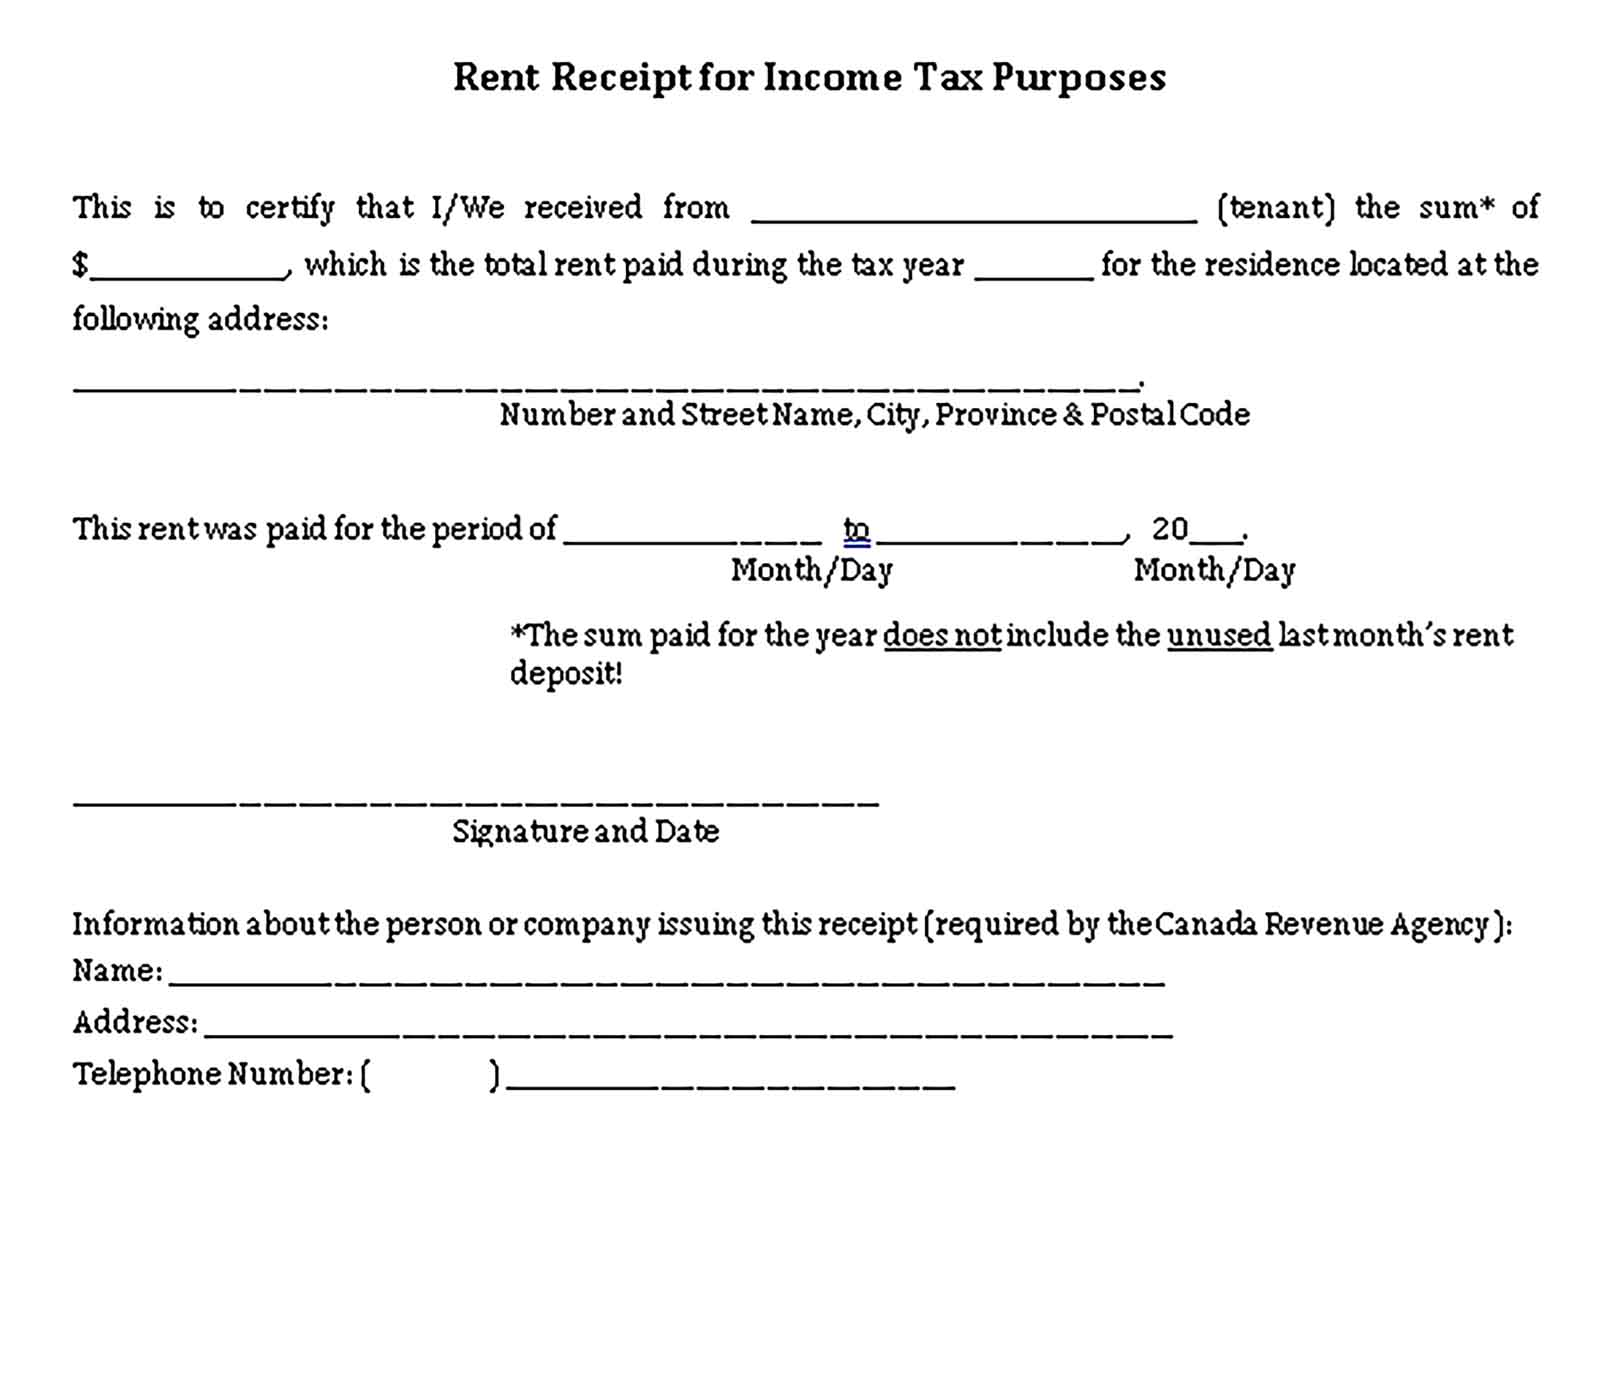 Sample Rent Receipt for Income Tax Purposes Templates 3